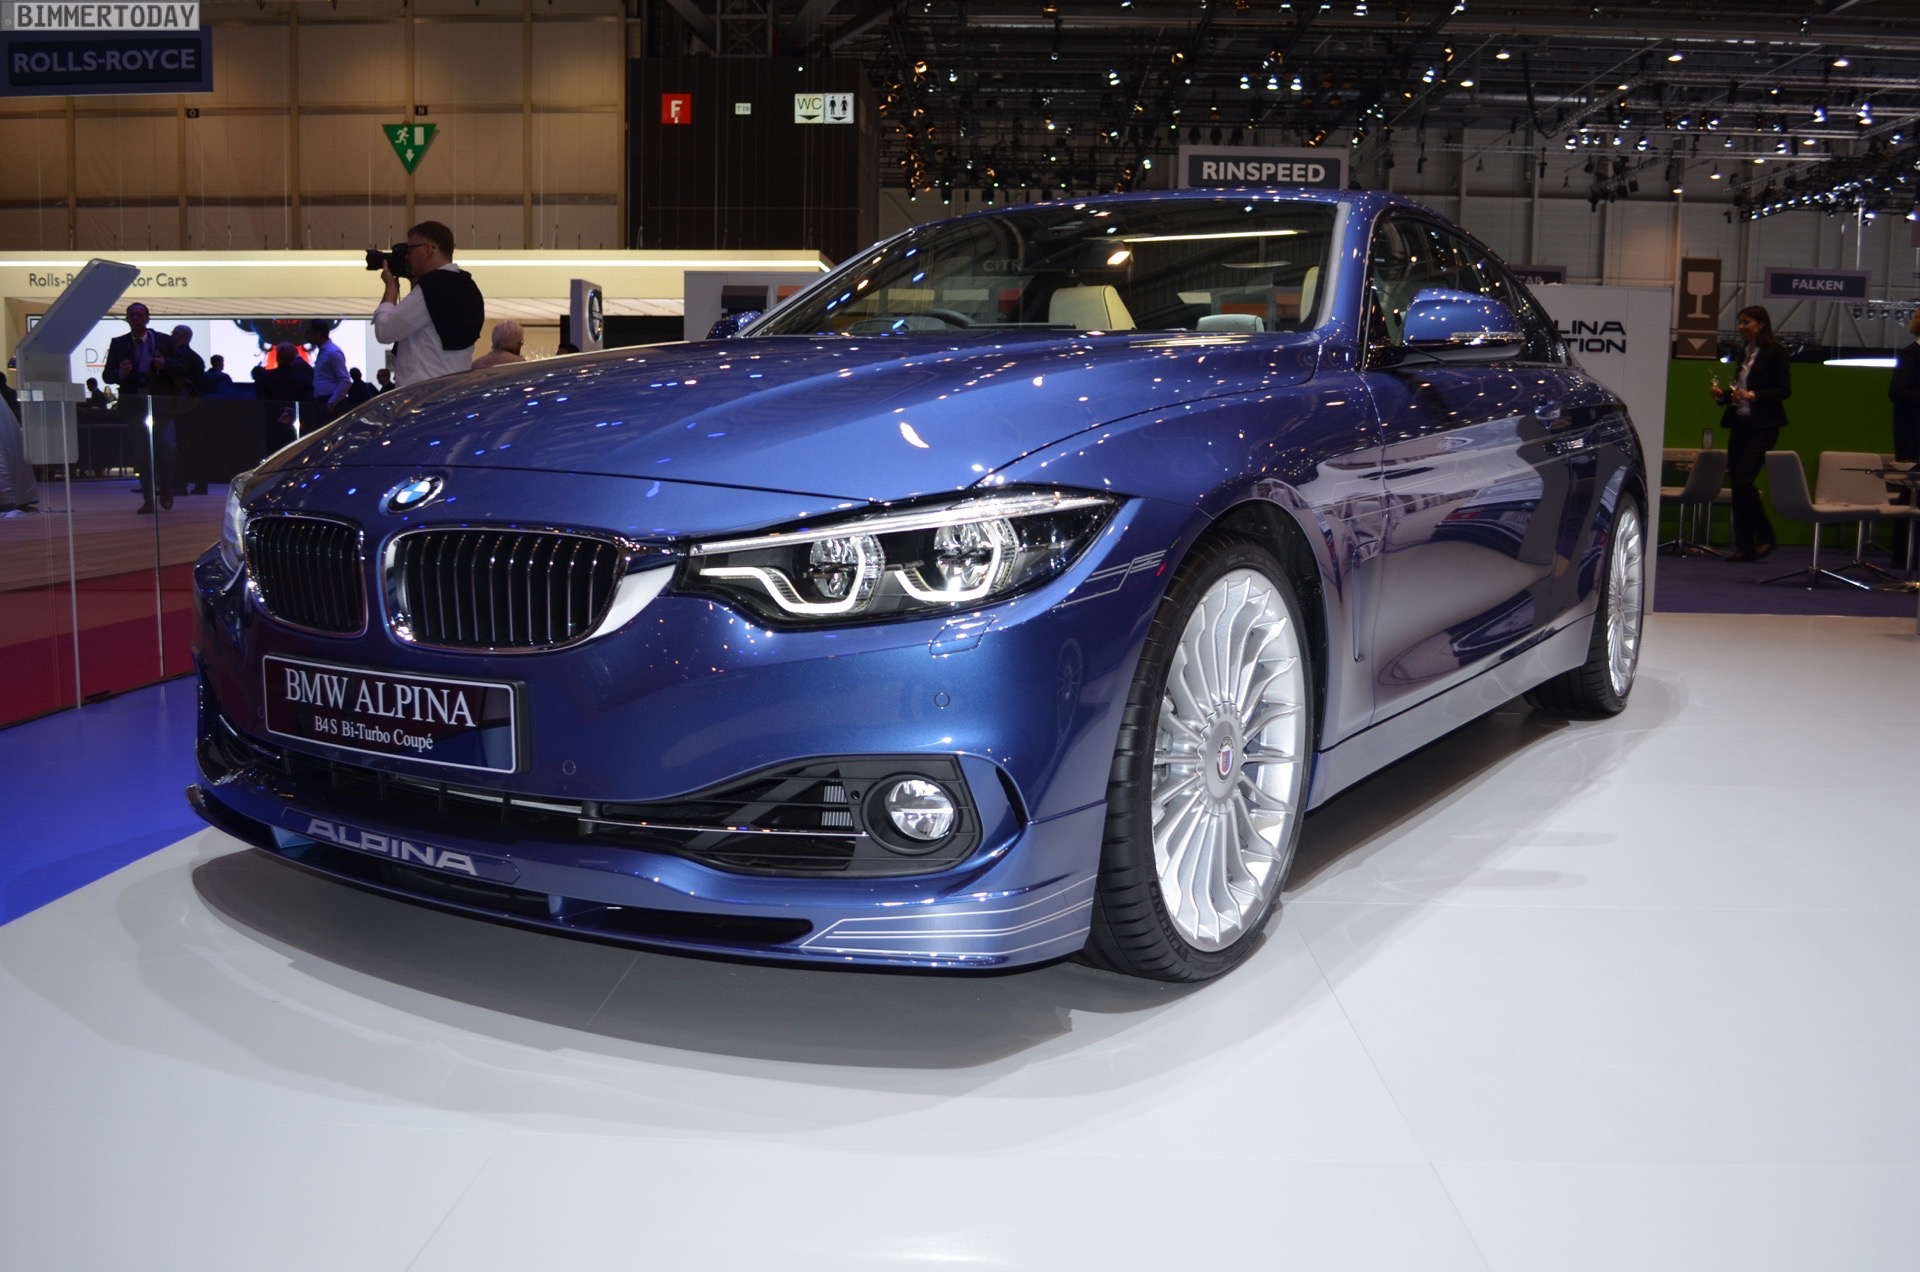 2017 Geneva Bmw Alpina B4 S With Facelift And Update To 440 Hp